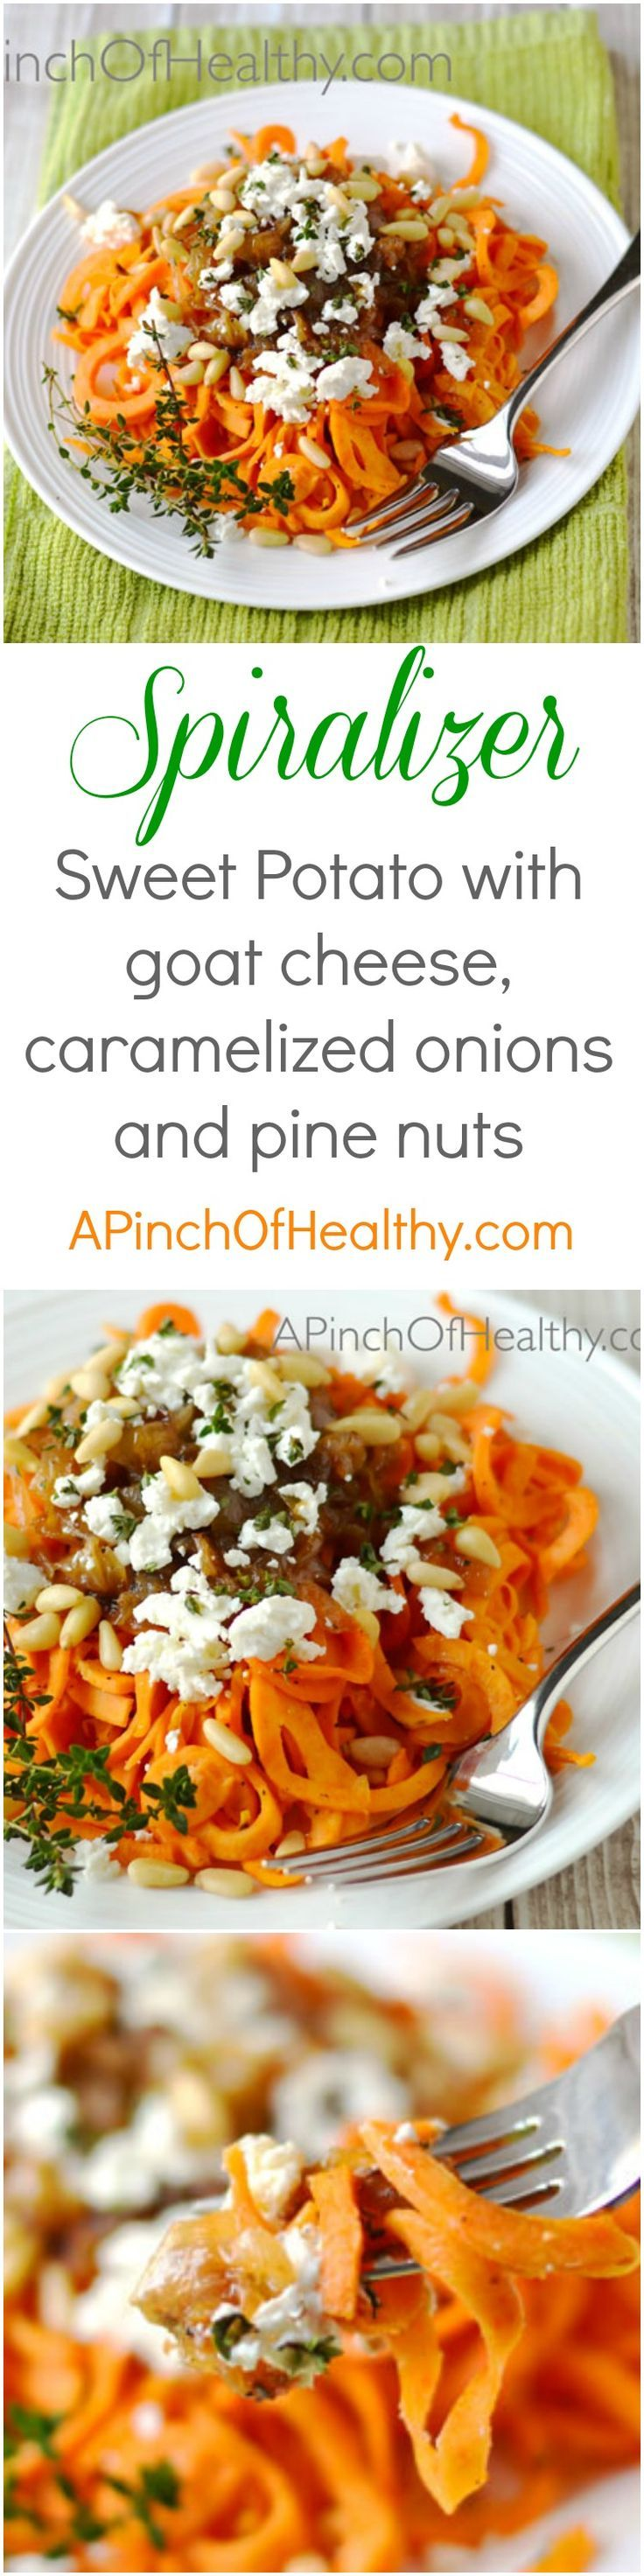 353 best images about spiralizer on pinterest   zucchini